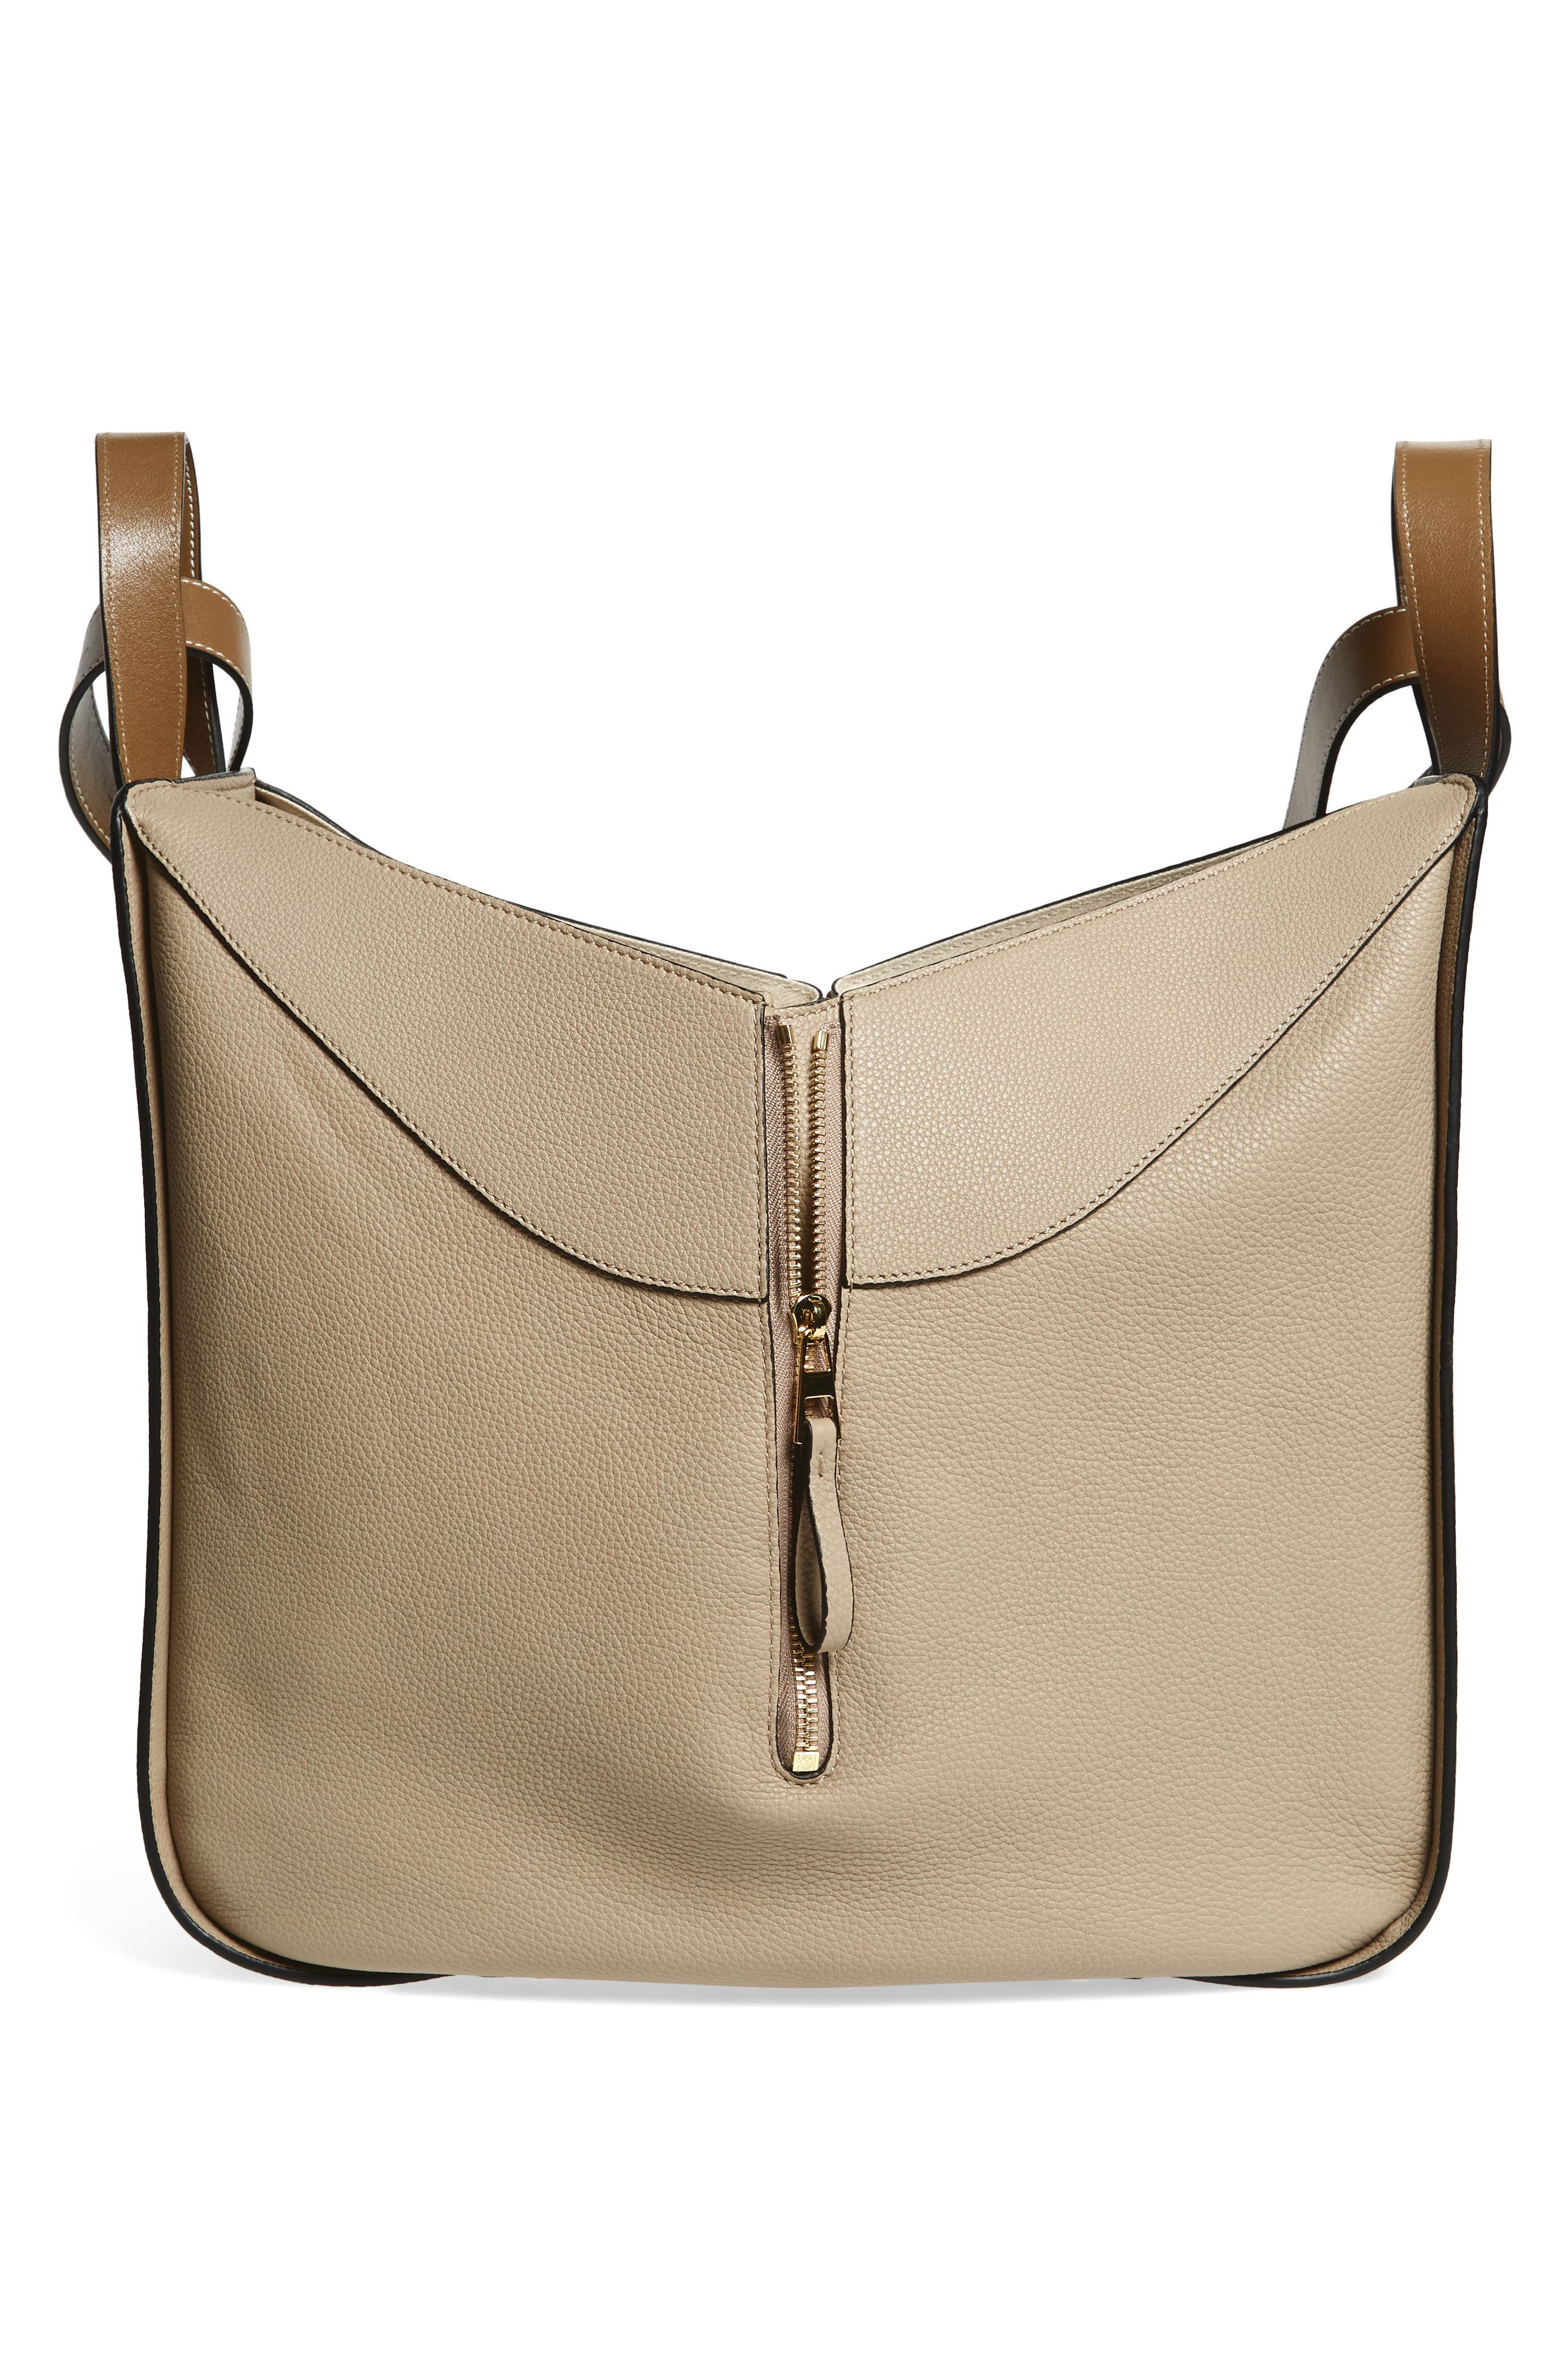 Medium Hammock Calfskin Leather Shoulder Bag,                             Alternate thumbnail 7, color,                             269